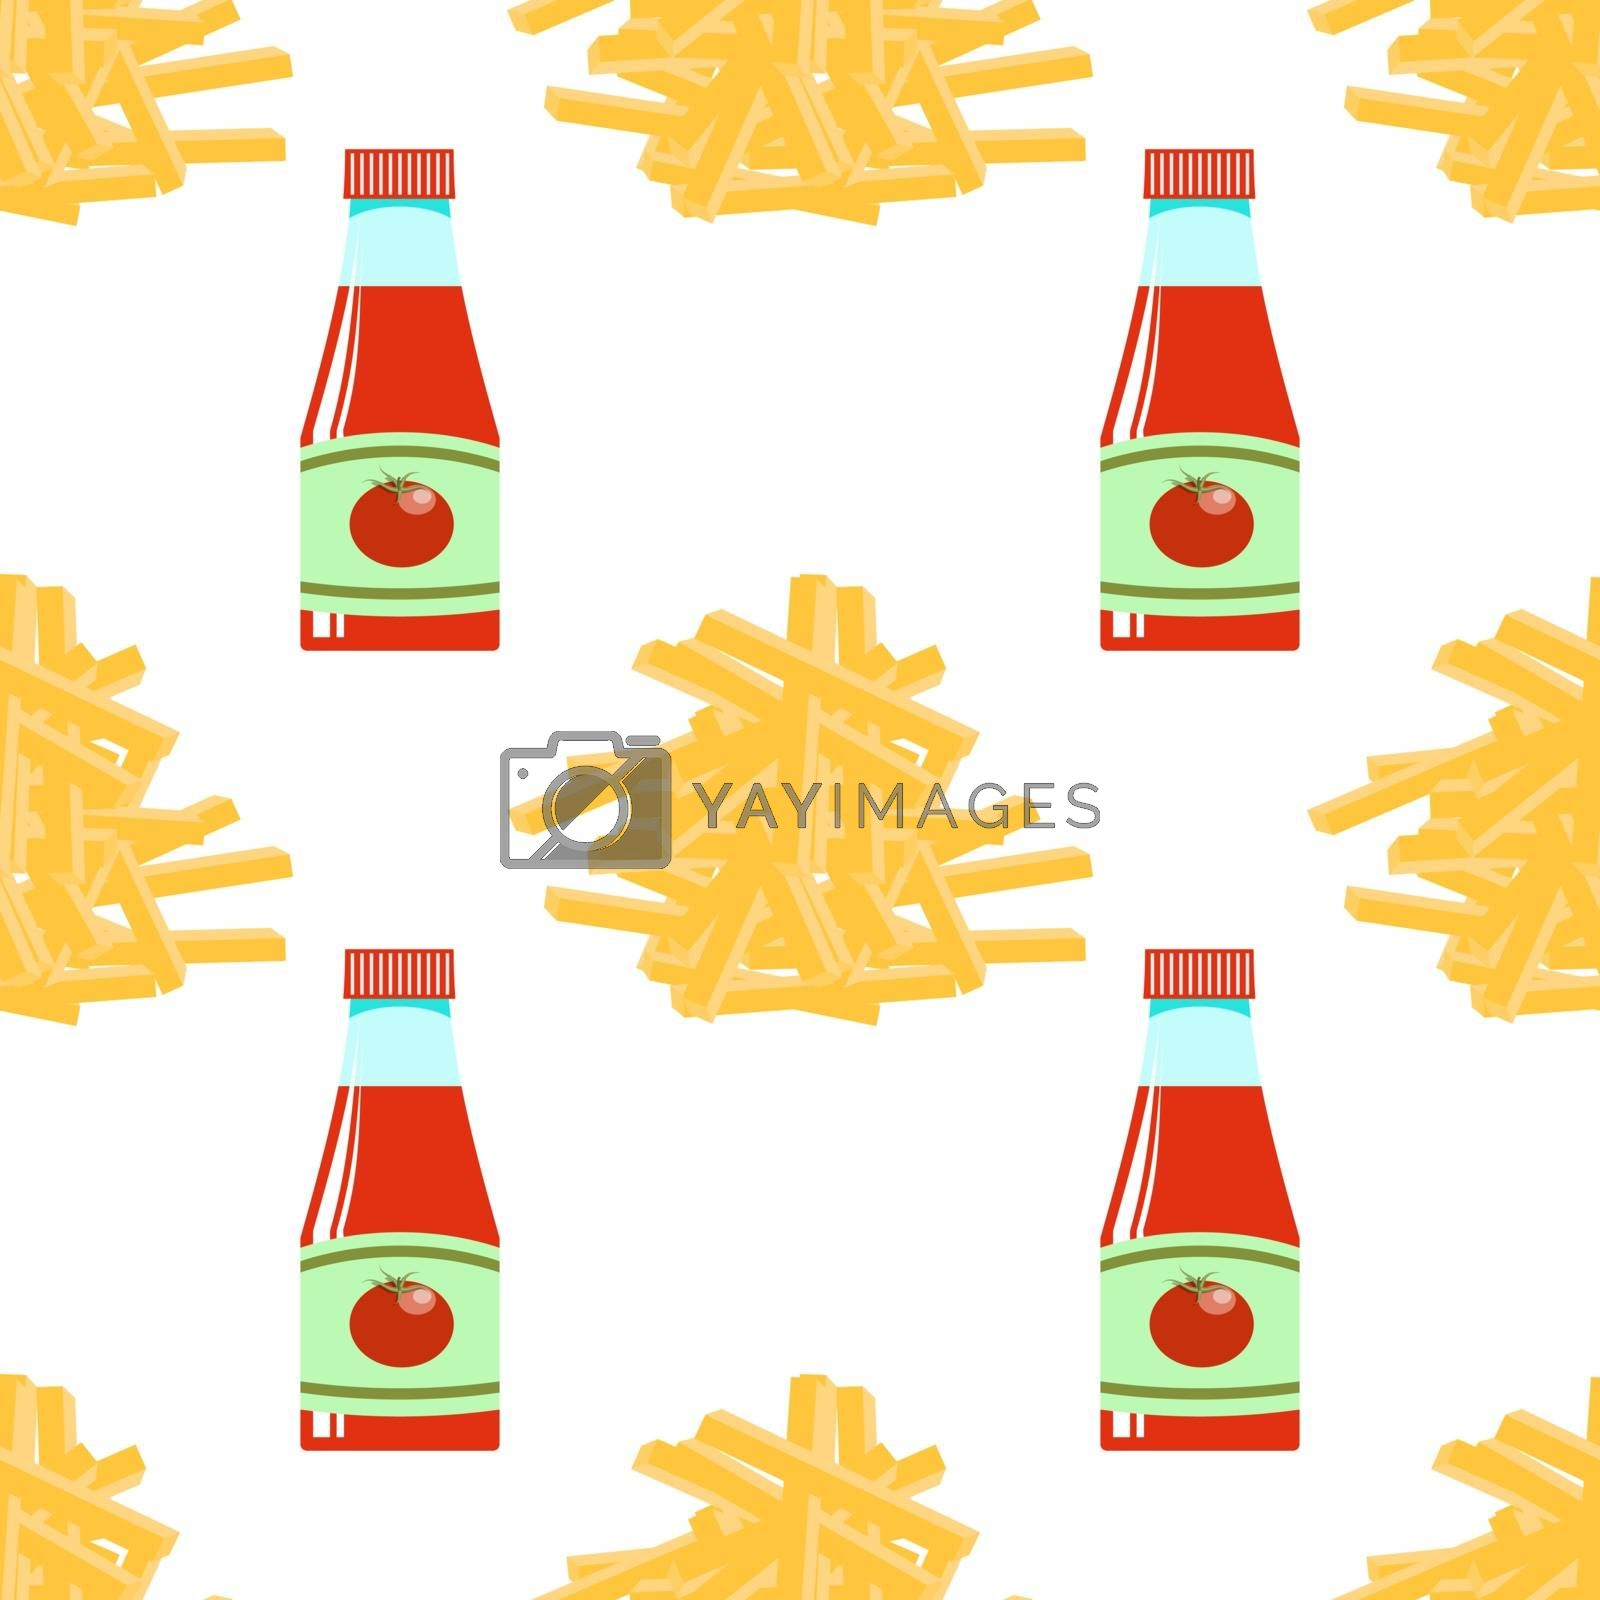 Yellow French Fries and Ketchup Texture. Fry Potato Chips Seamless Pattern on White Background. Slices of Tasty Vegetable. Fast Food Snack. Organic Food. 3d Illustration.